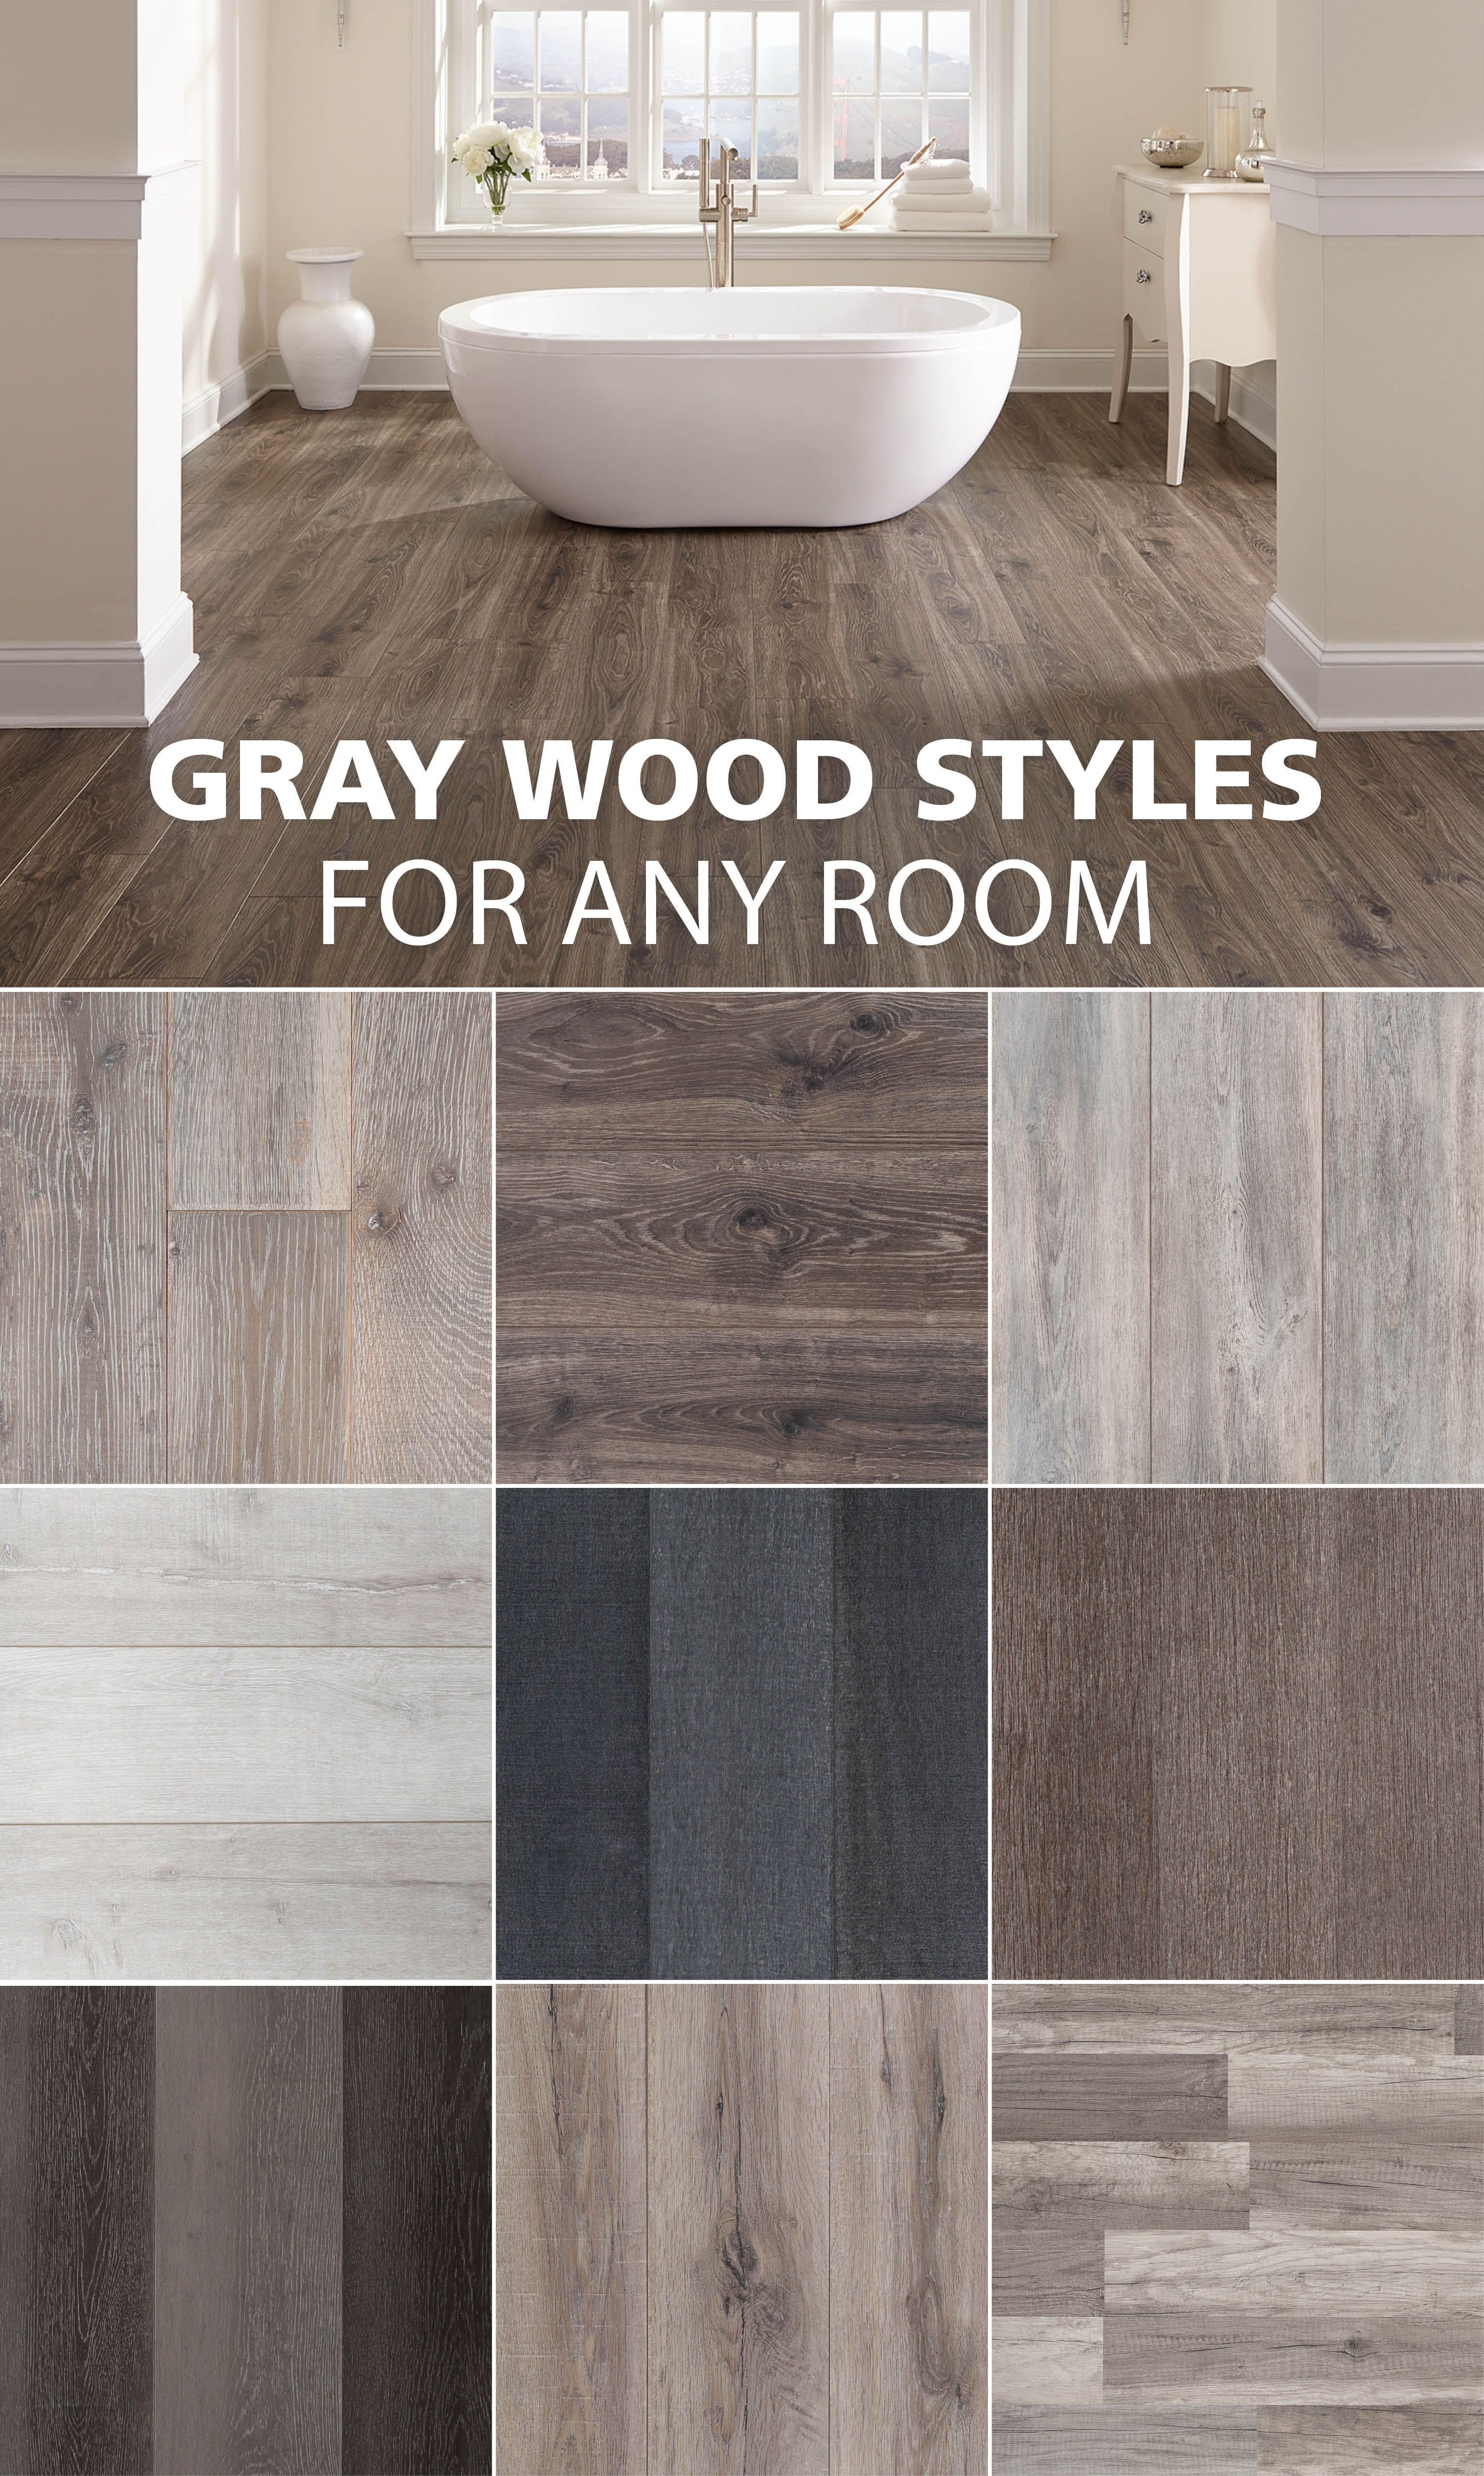 how to match hardwood floors of here are some of our favorite gray wood look styles home decor intended for here are some of our favorite gray wood look styles gray hardwood floors light